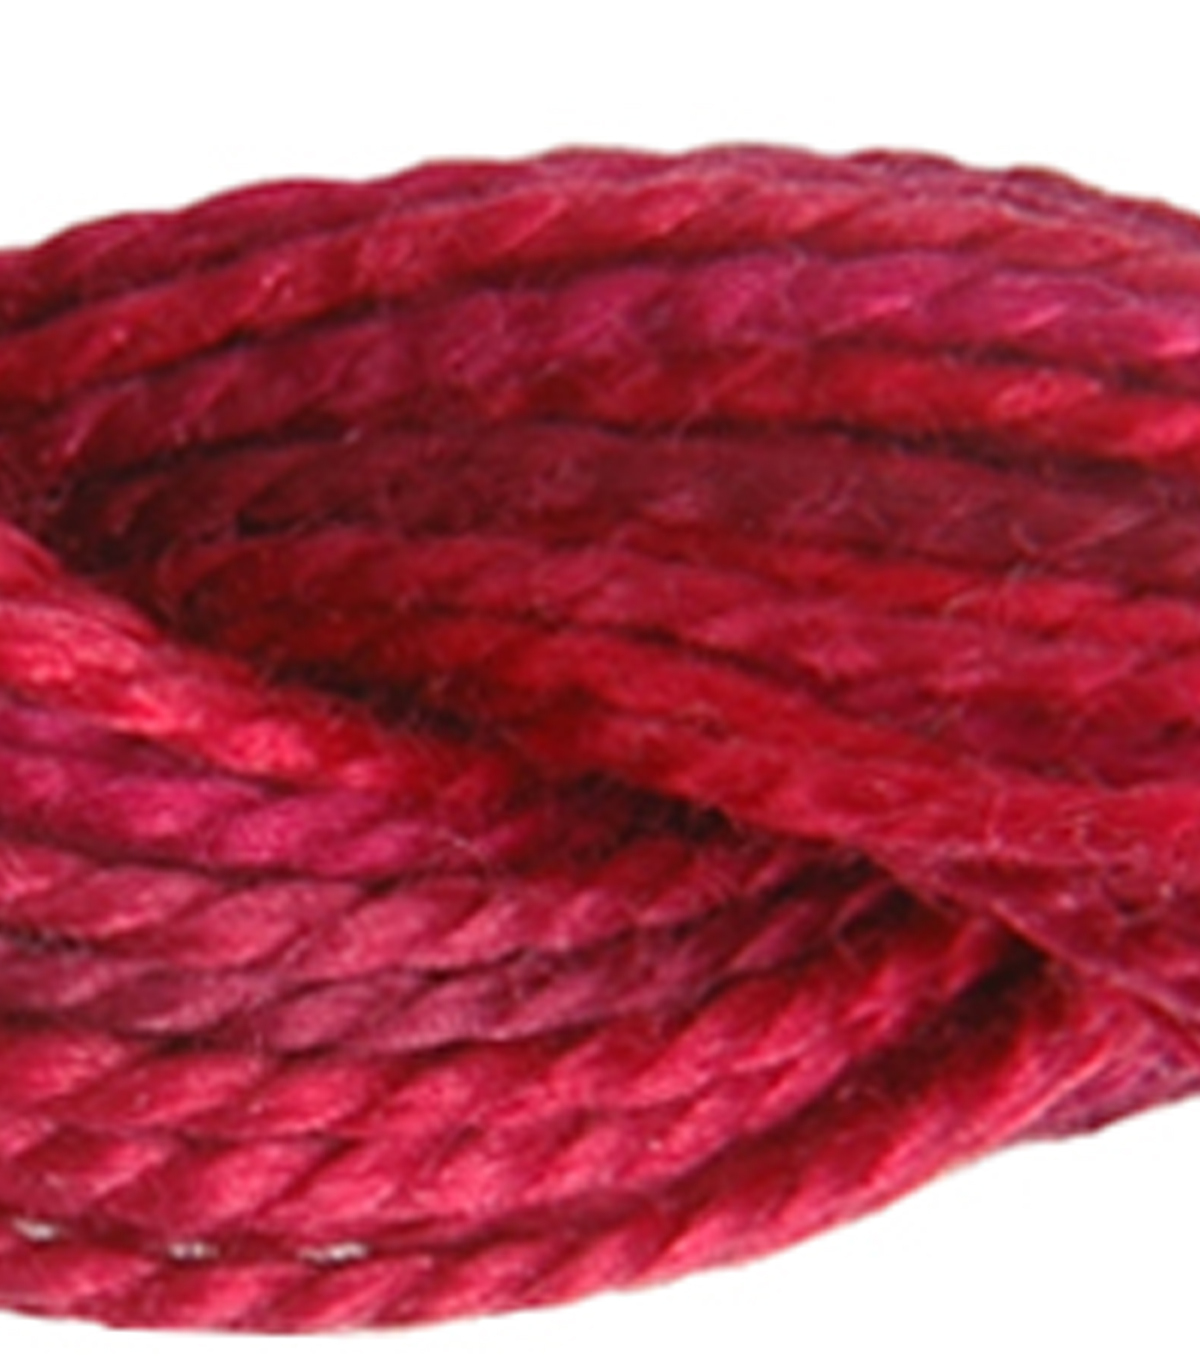 DMC Pearl Cotton Thread 27 Yds Size 5, Radiant Ruby